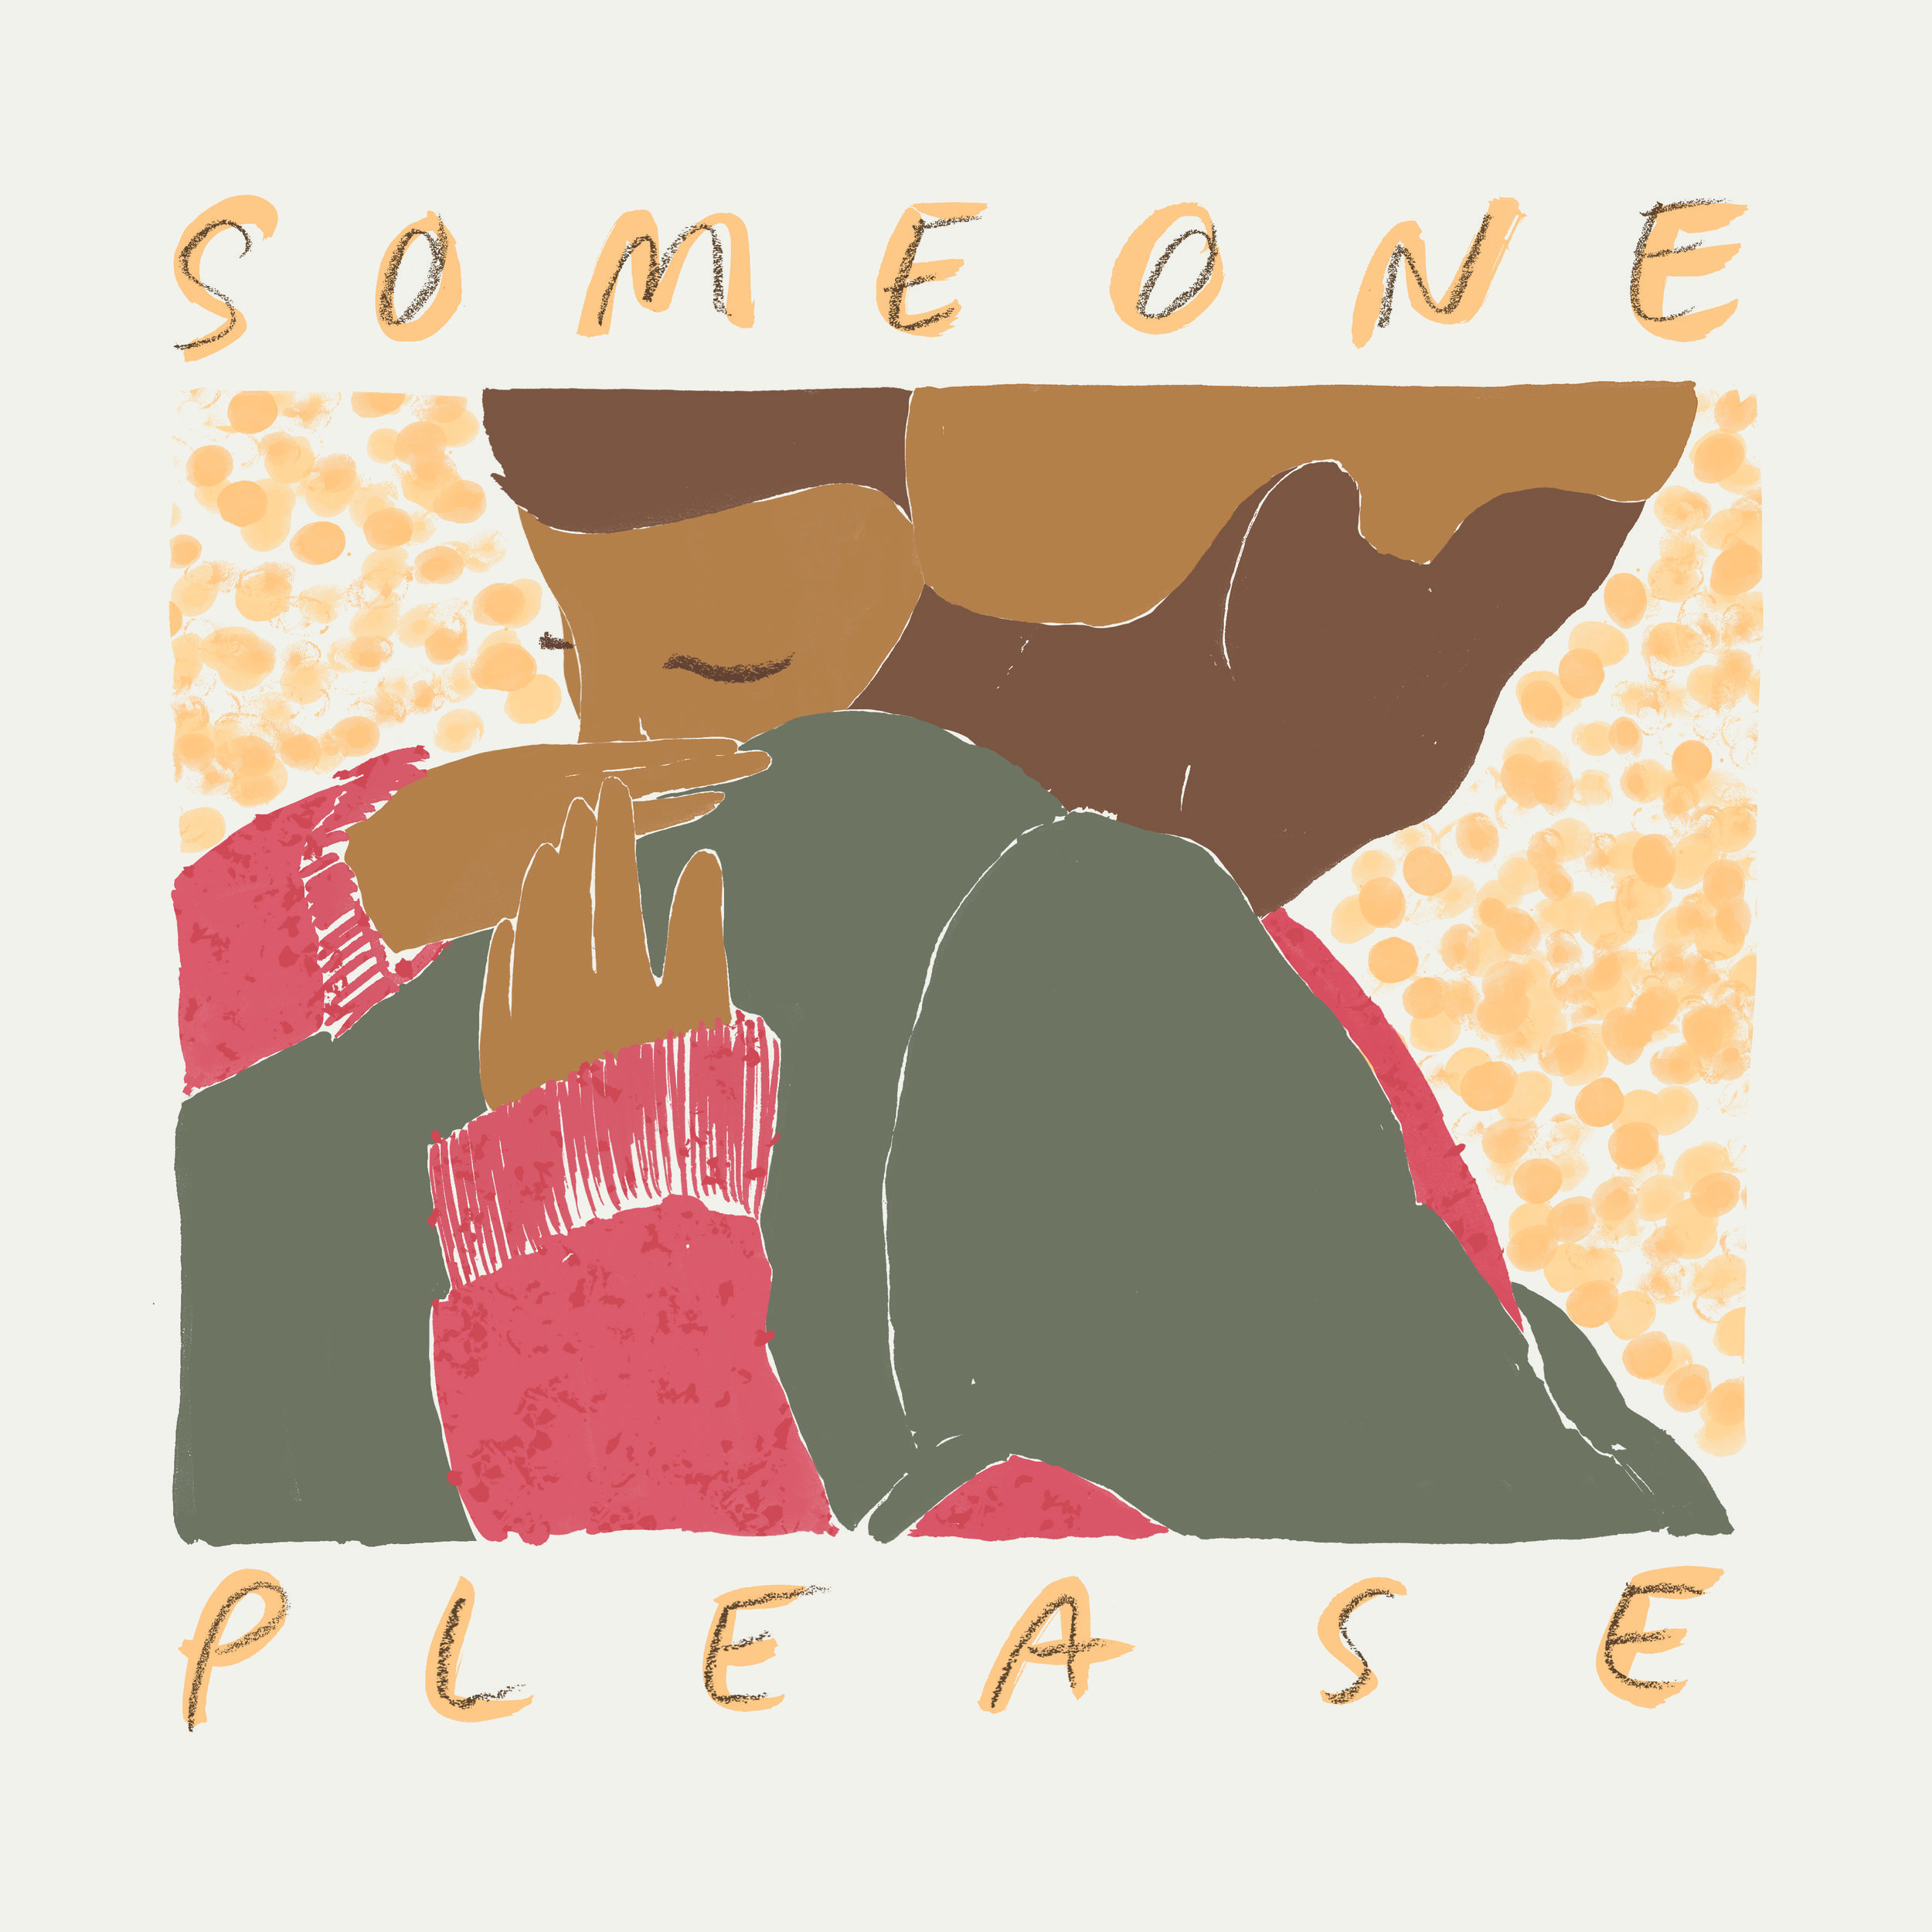 """1. Samad Abdul  (@Samad_durrani88) """"Some one plz stop my tears. Some one plz kill my pain. Some one plz hold me tight. Some one plz make me smile."""" - Illustration by Allison Colpoys"""